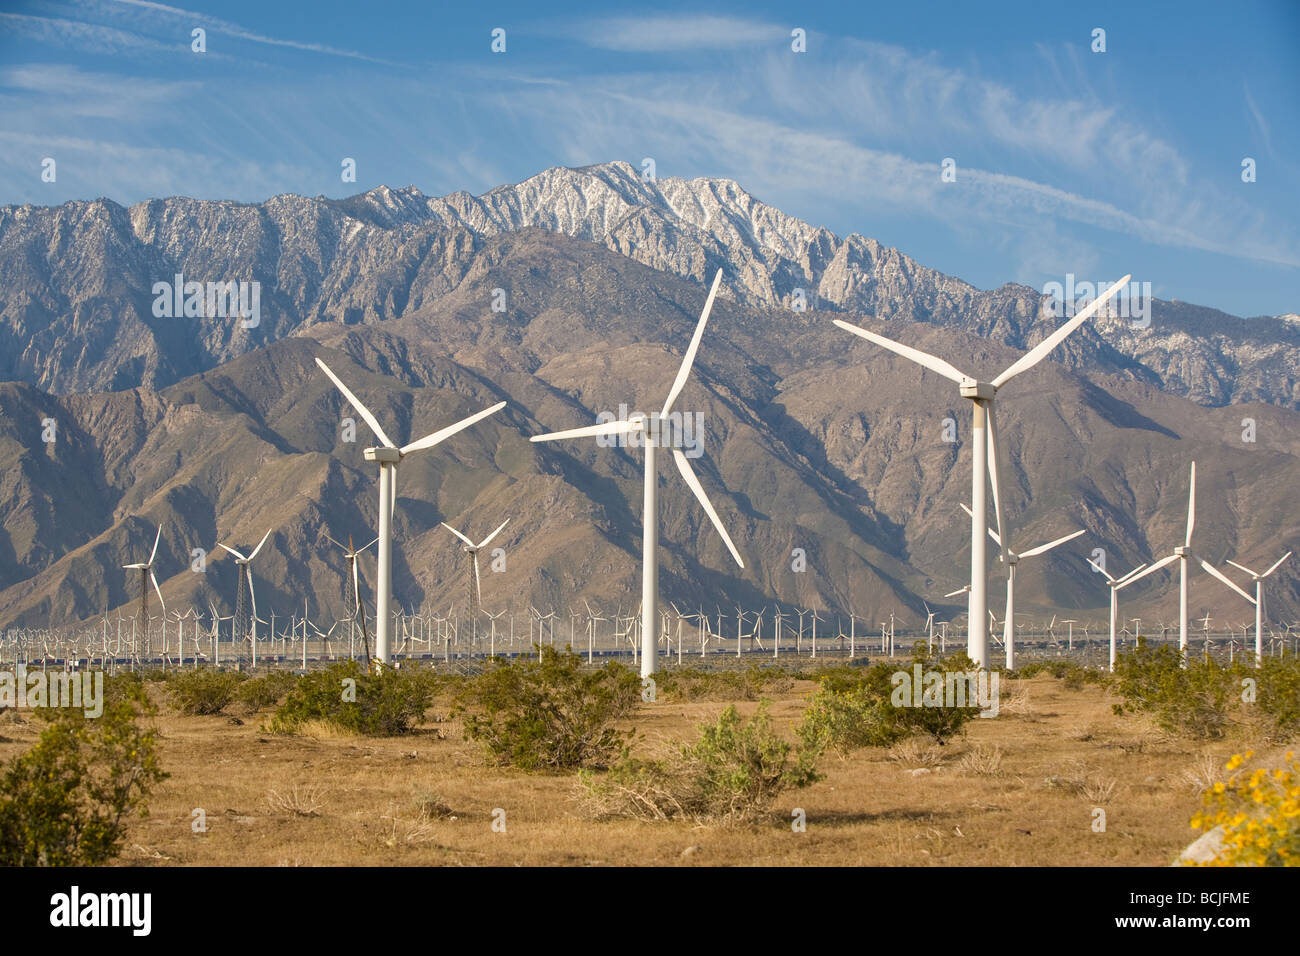 Energy generating windmills in desert with snow capped San Jacinto Mountains in background Palm Springs California - Stock Image